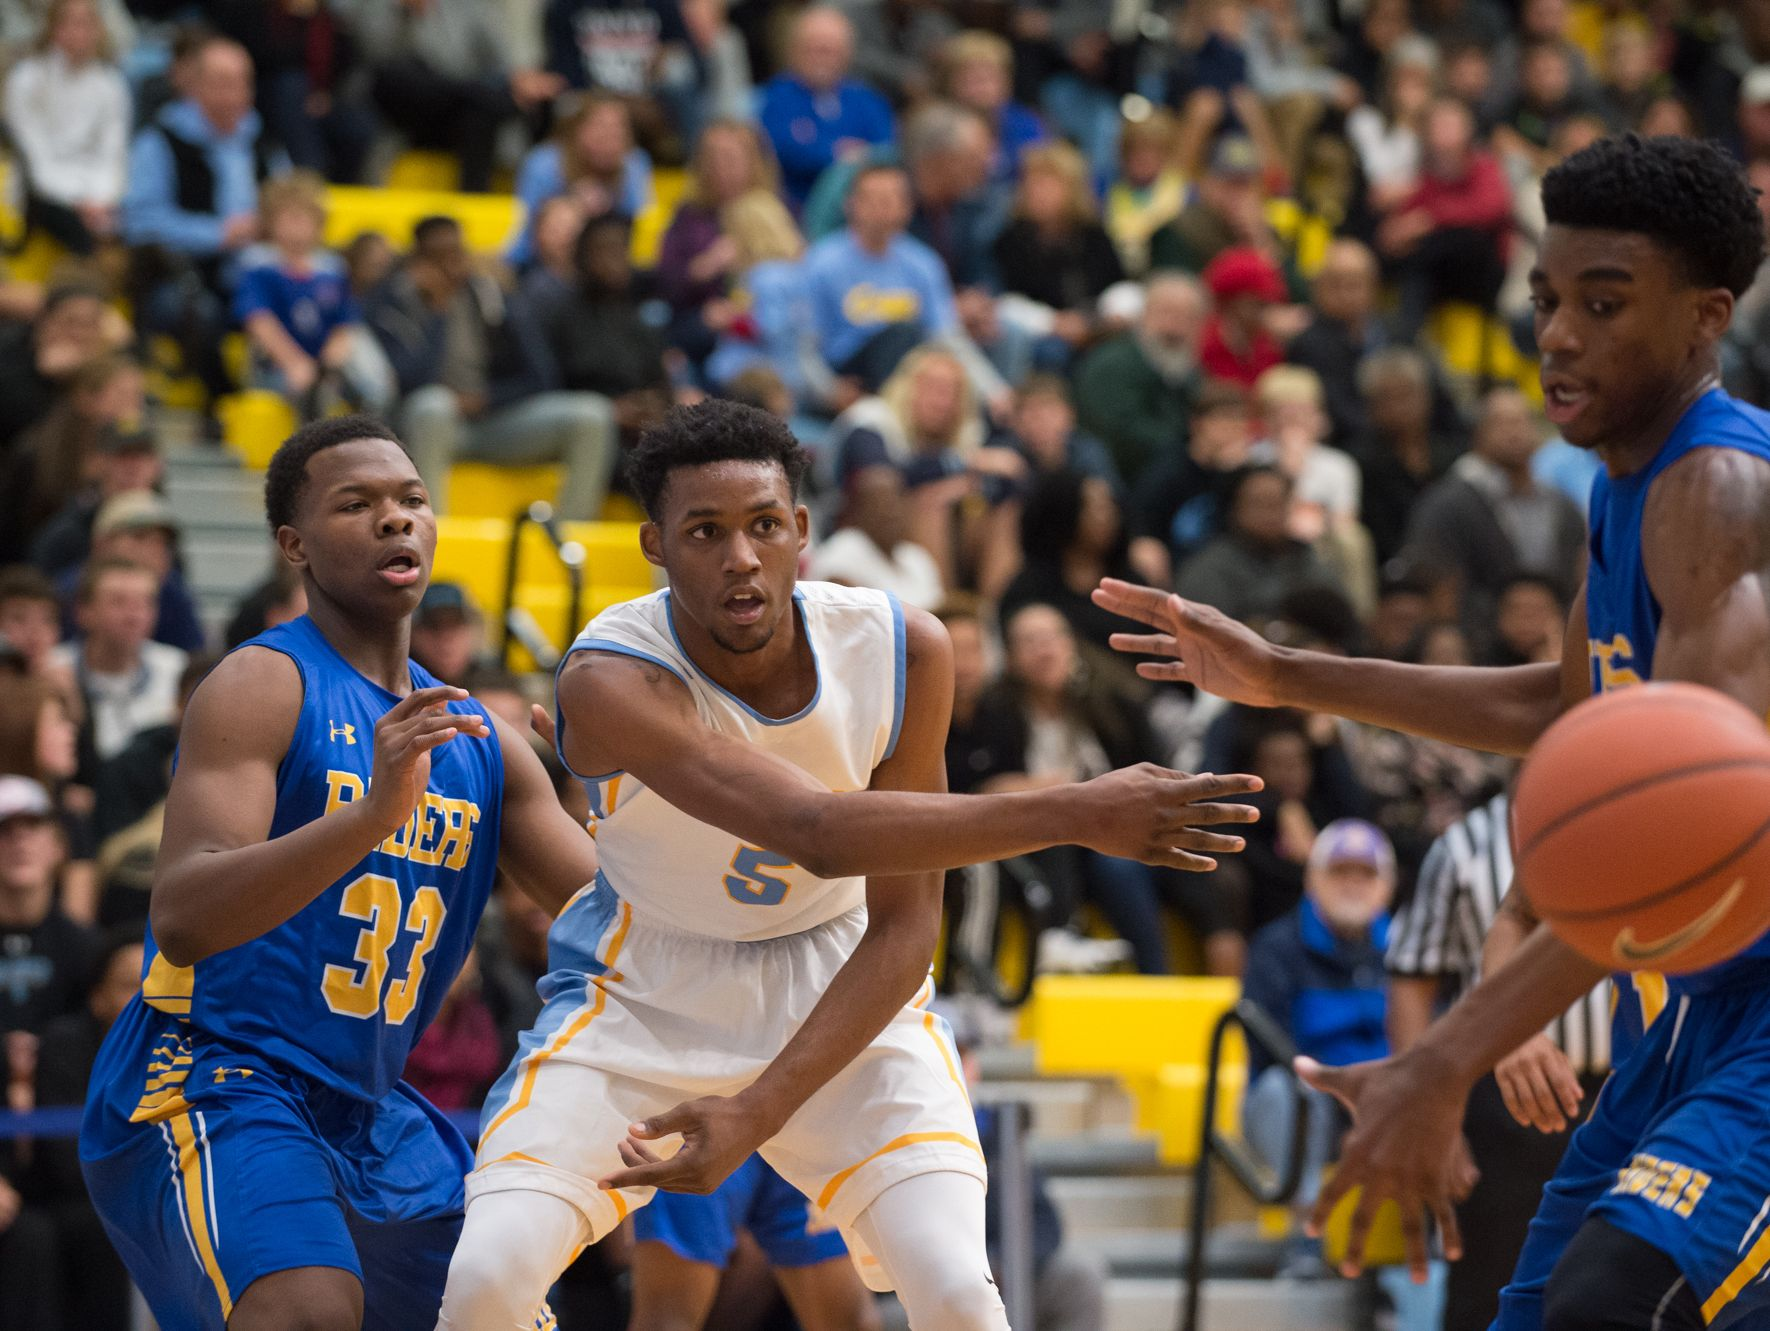 Cape Henlopen's Randy Rickards (5) passes the ball in front of the hoop in their home game against Caesar Rodney.